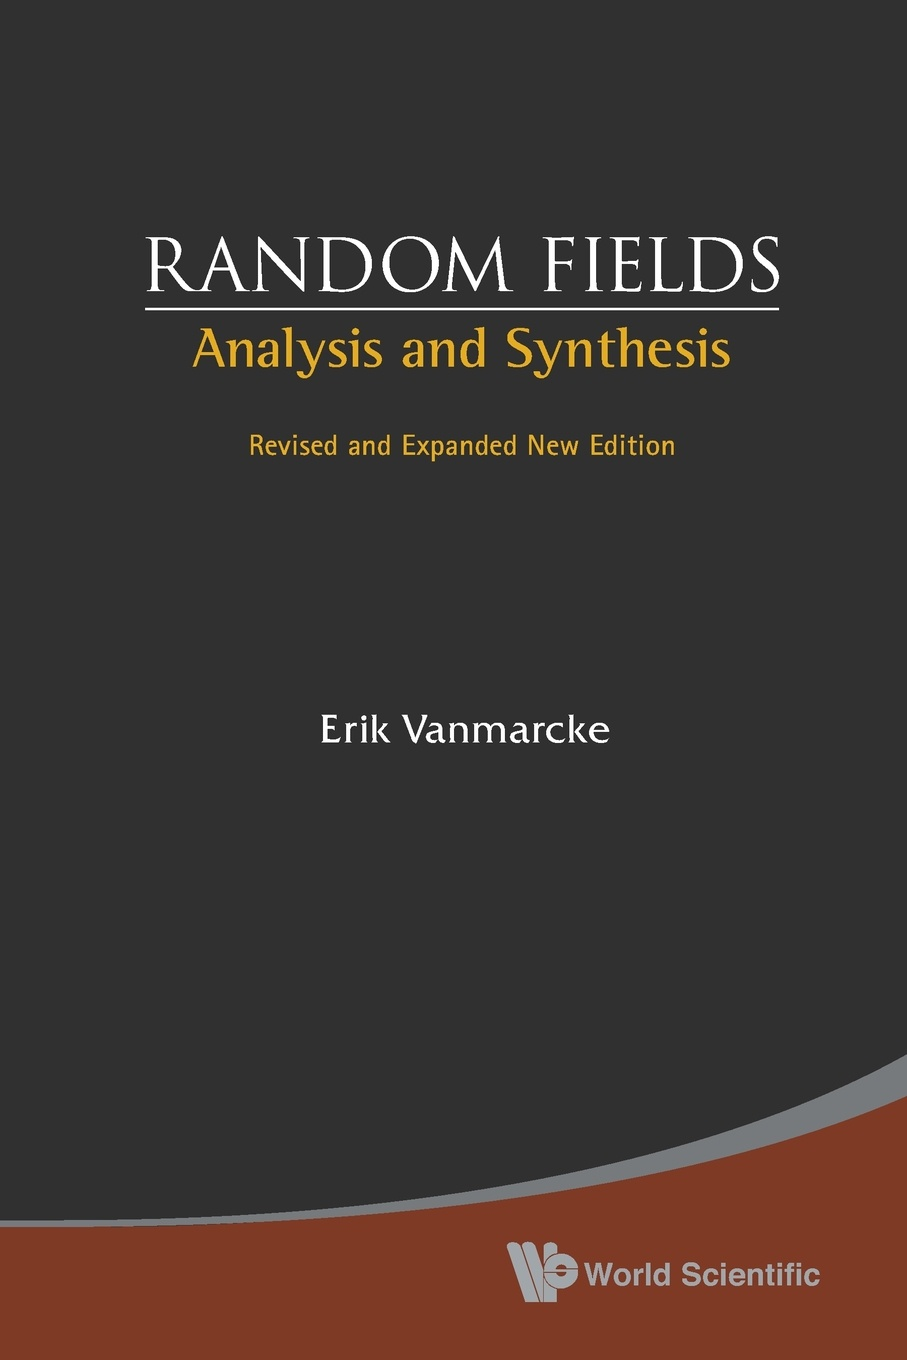 ERIK VANMARCKE RANDOM FIELDS. ANALYSIS AND SYNTHESIS (REVISED AND EXPANDED NEW EDITION) bendat julius s random data analysis and measurement procedures